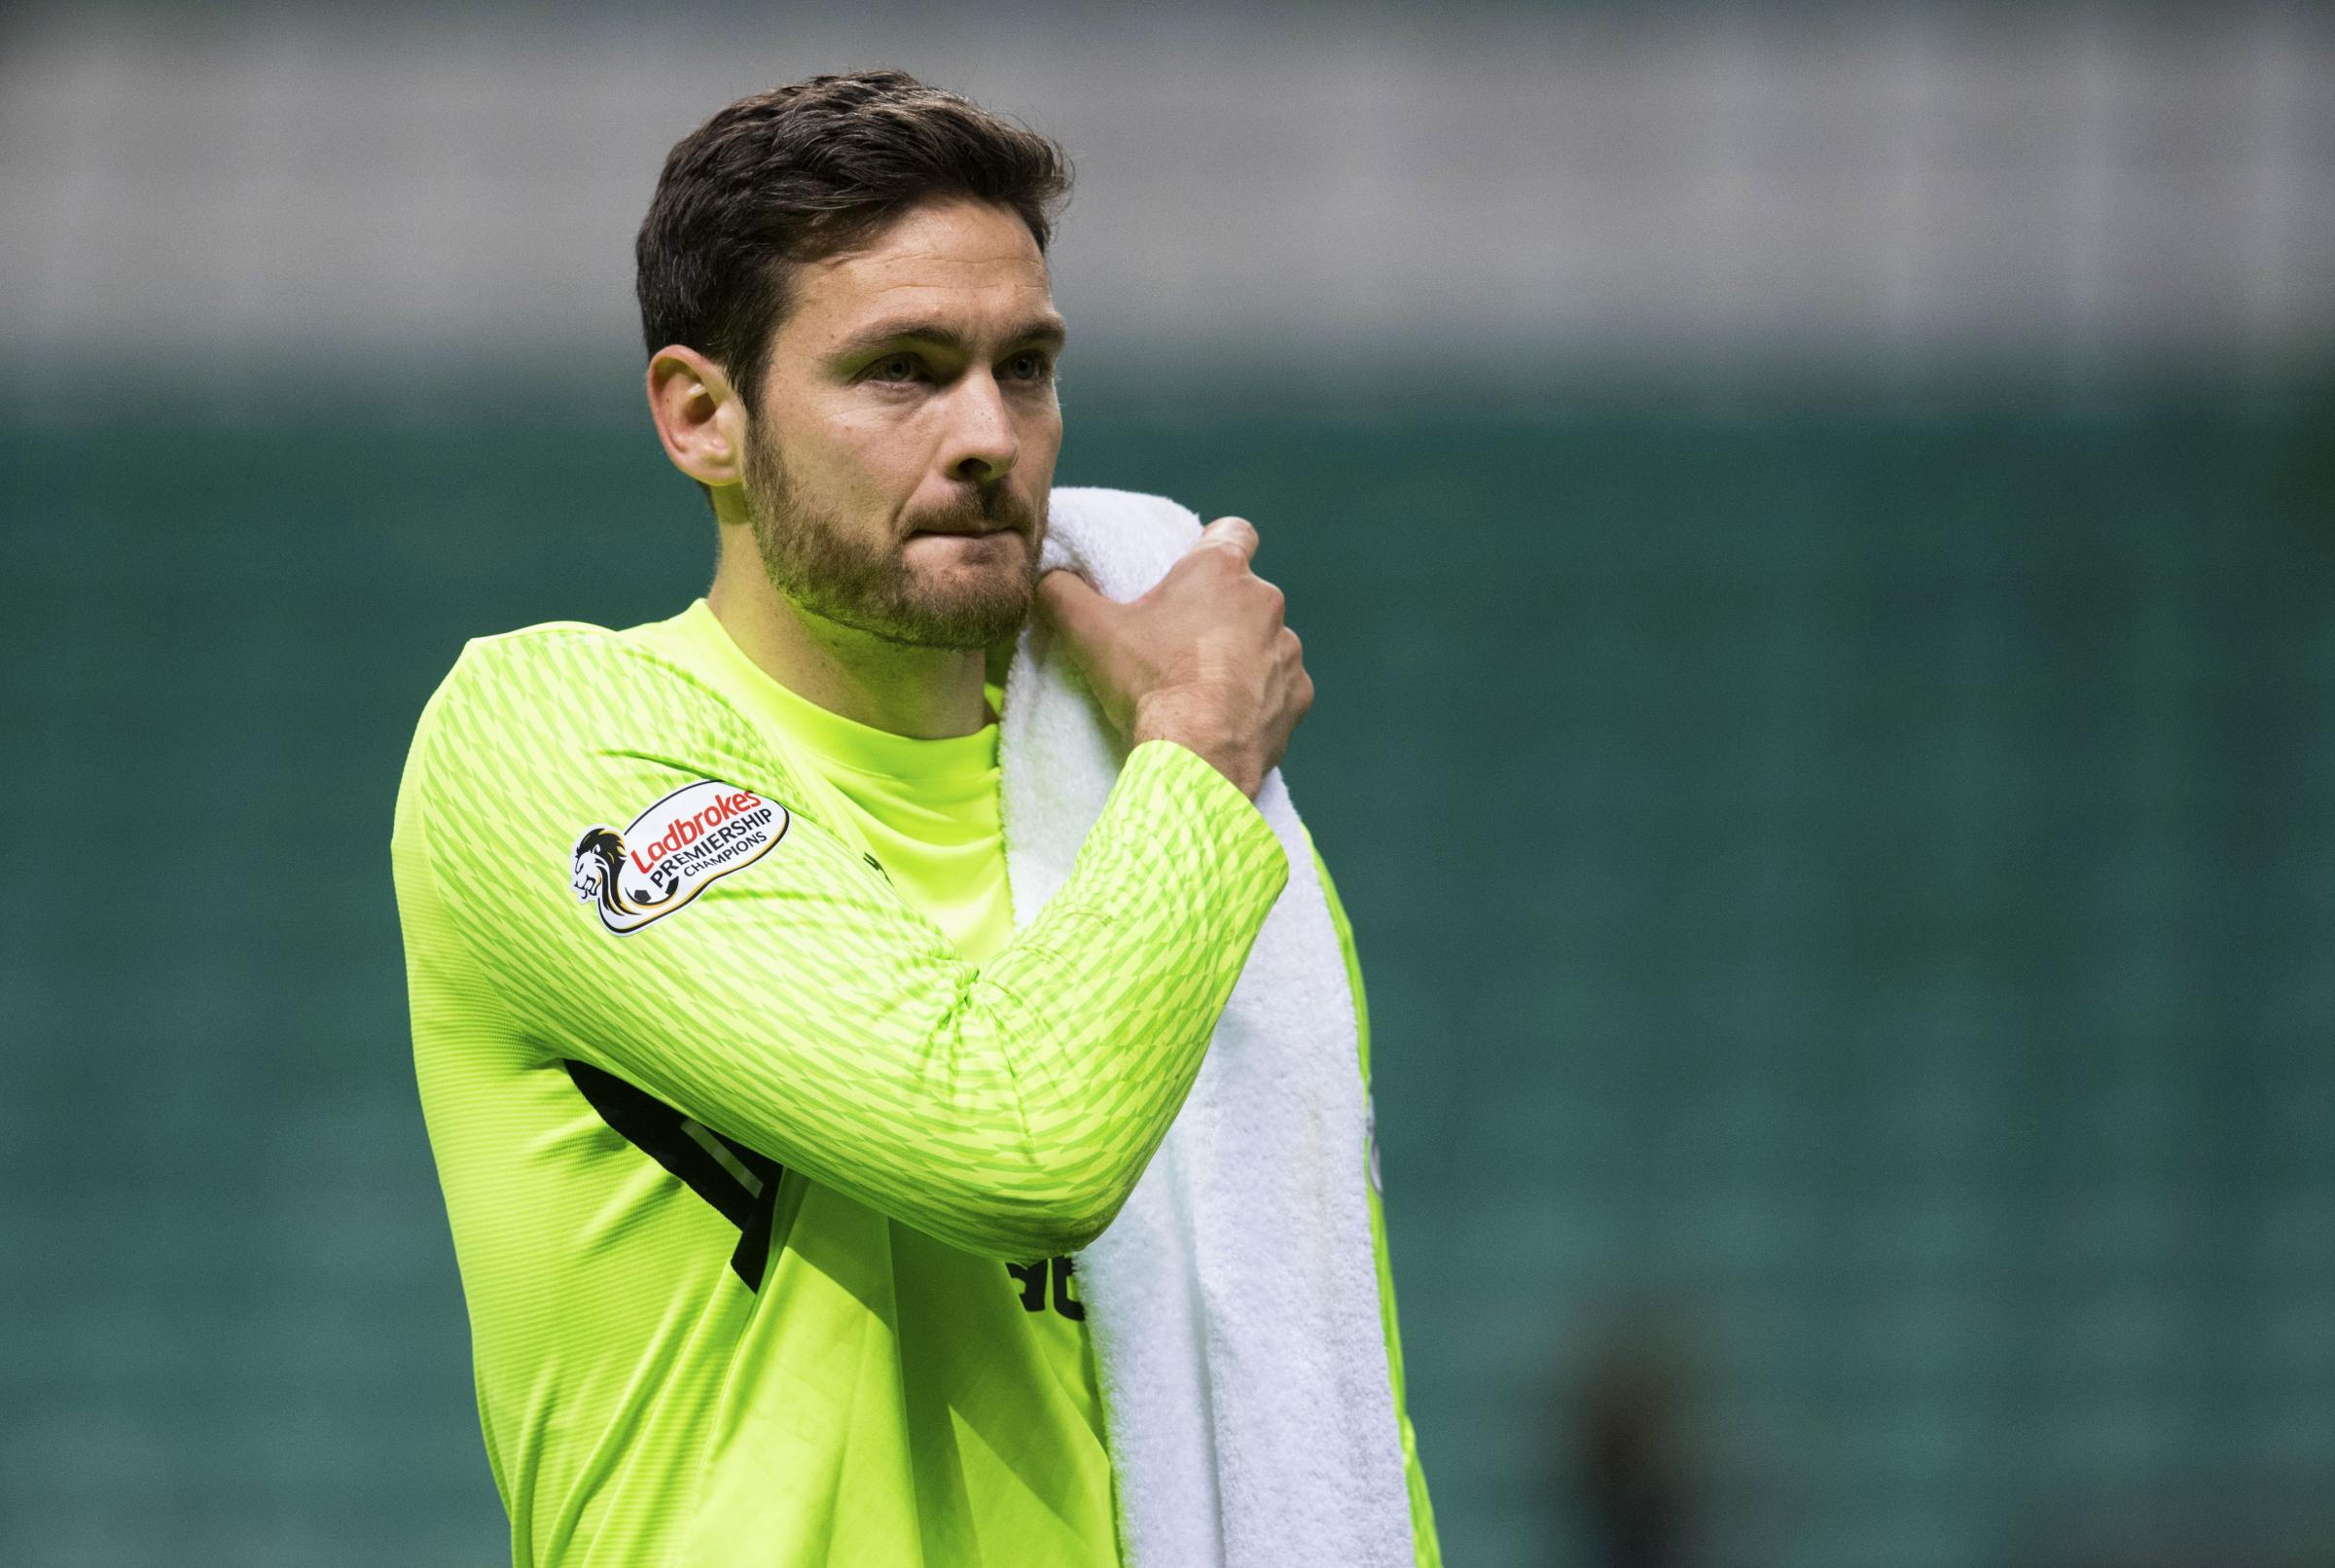 Celtic goalkeeper Craig Gordon after the Dundee game on Wednesday night.